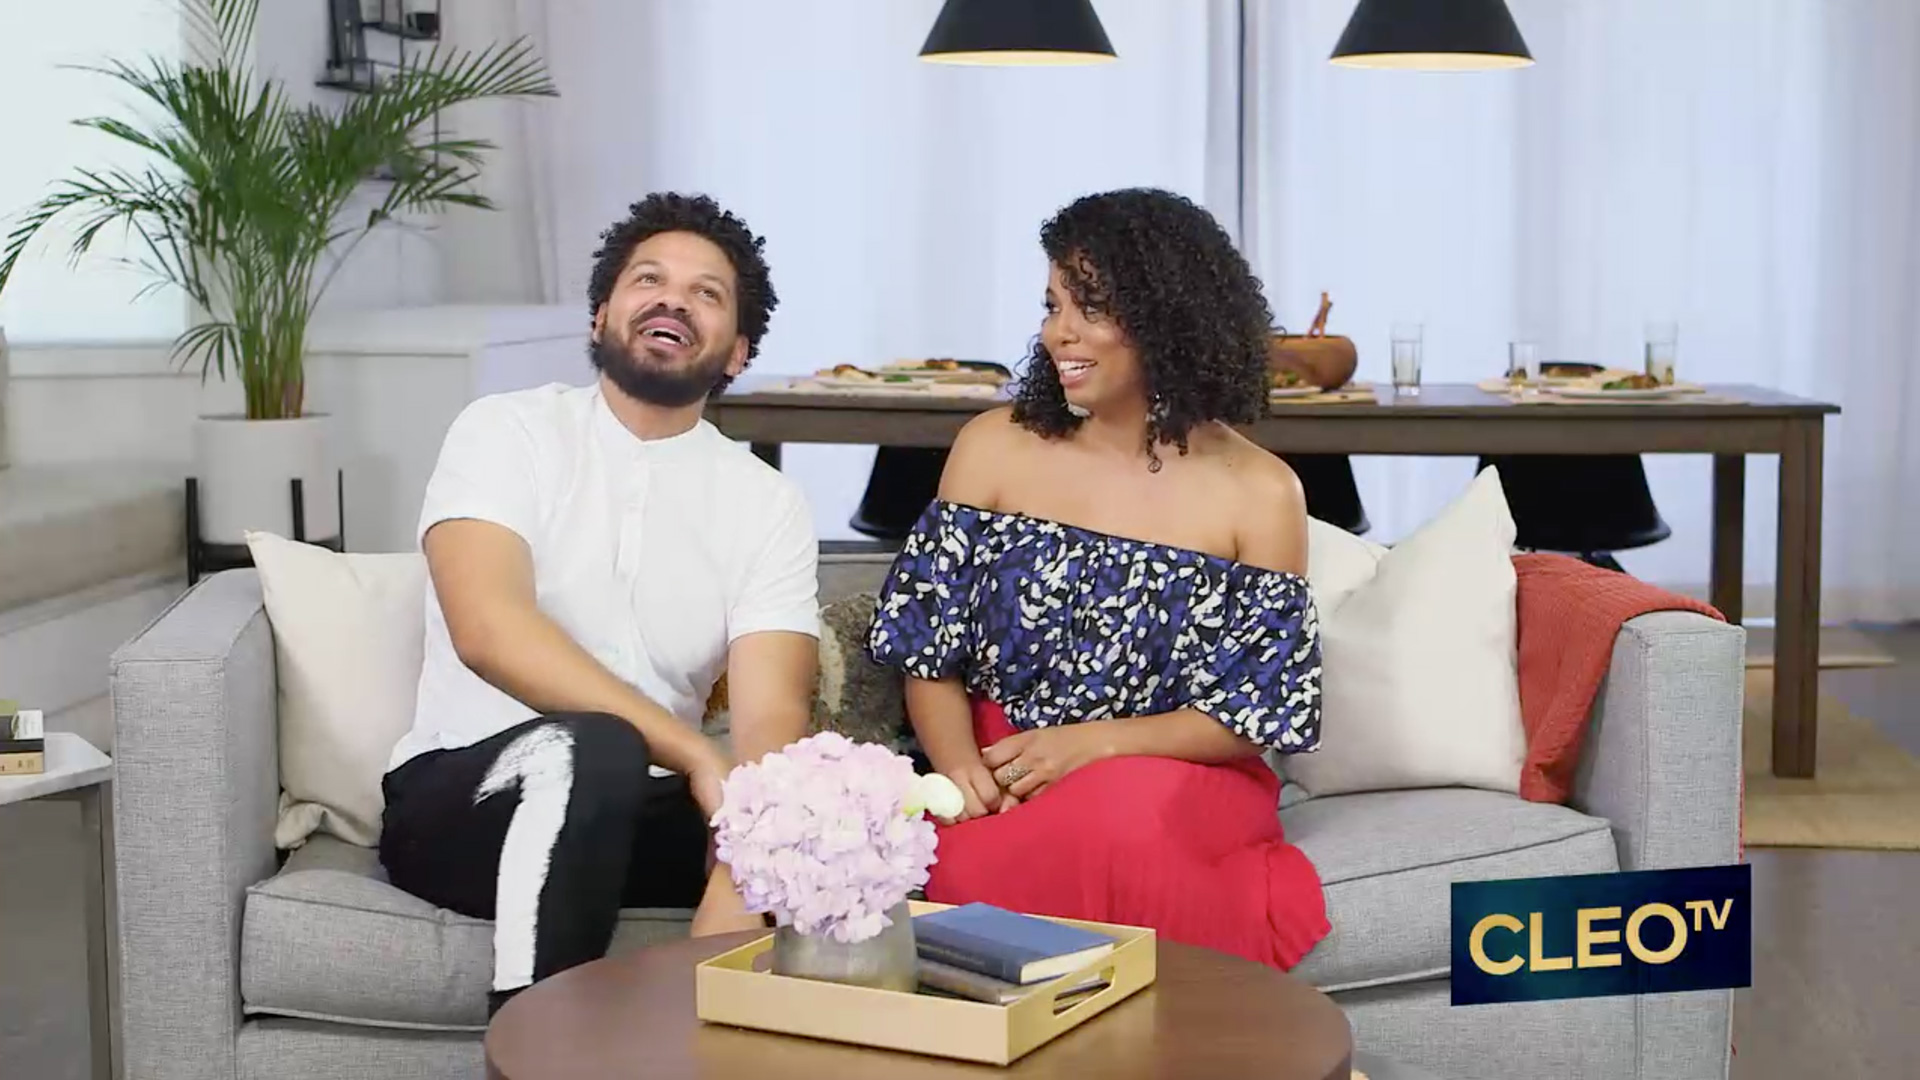 The unscripted home improvement series Living By Design, co-hosted by Jake and Jazz Smollett, is returning to Cleo TV.